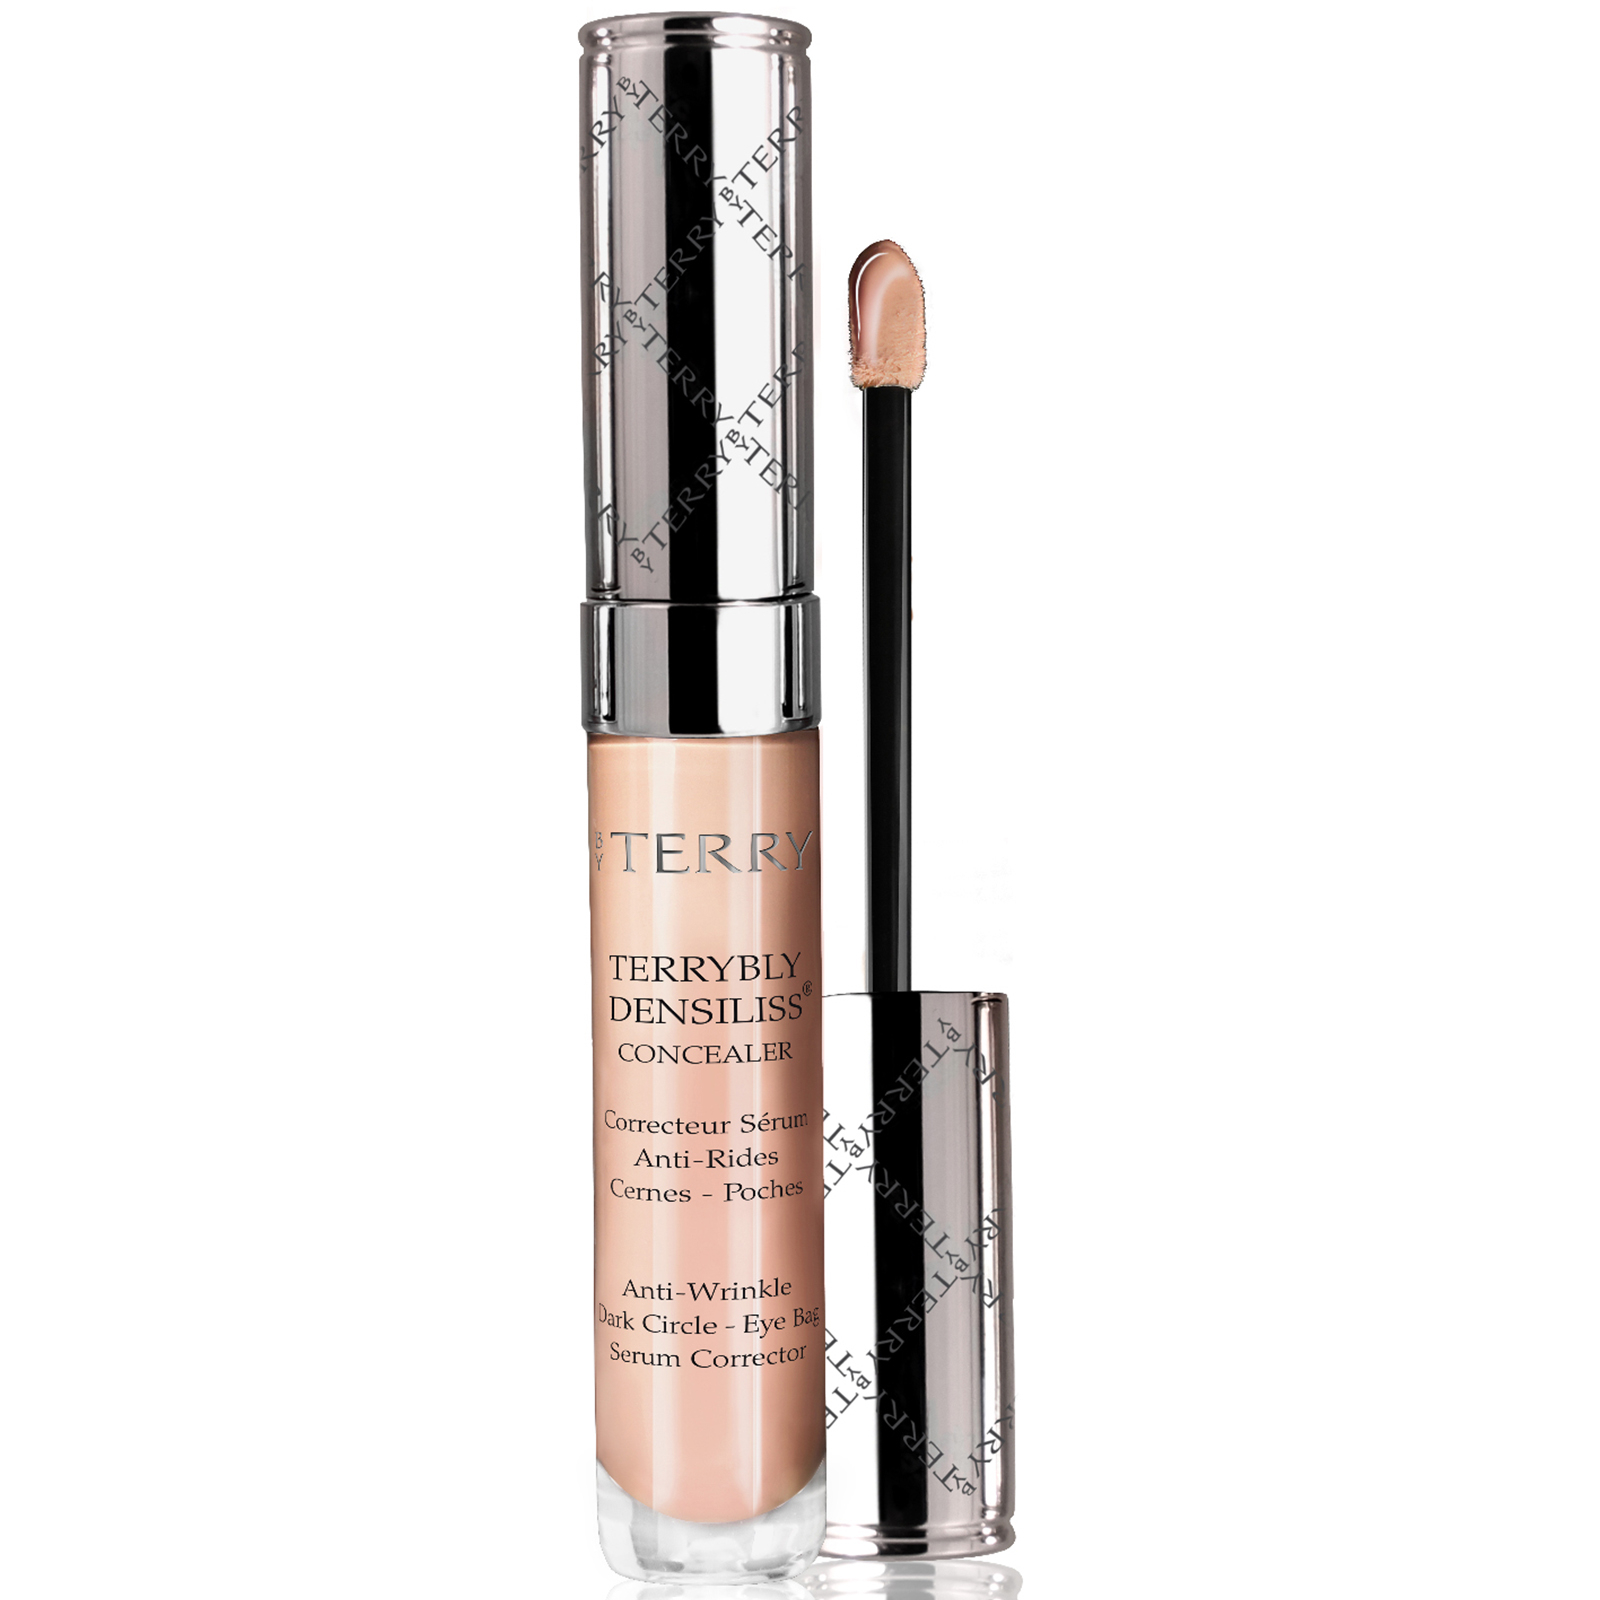 By Terry Terrybly Densiliss Concealer 7ml (Various Shades) - 1. Fresh Fair